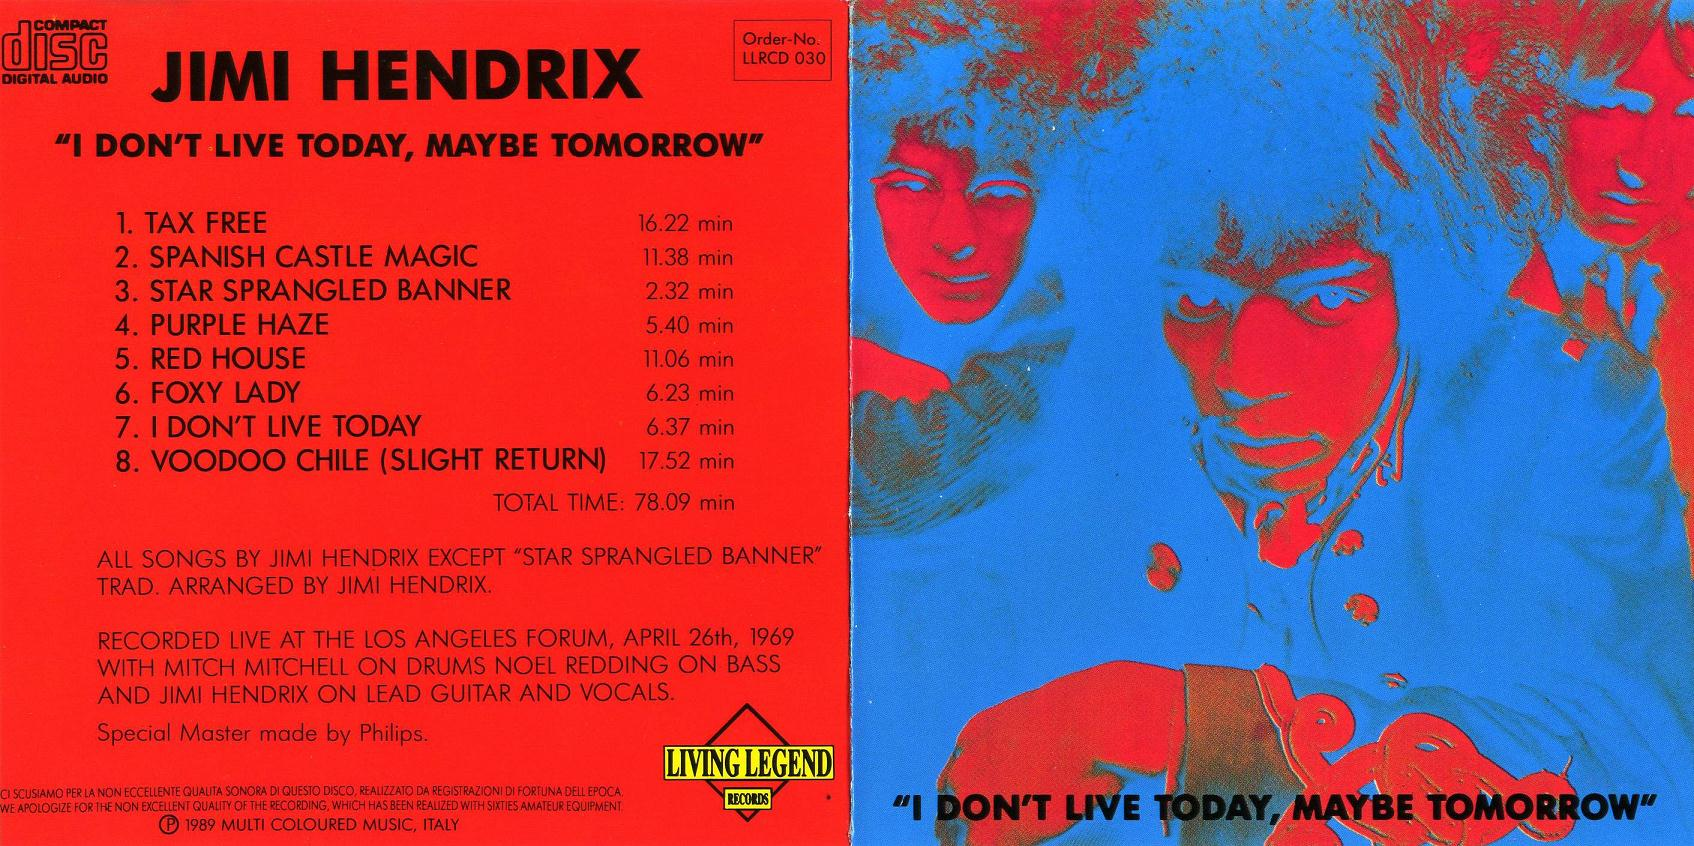 1969-04-26-I_don't_live_today_maybe_tomorrow-front